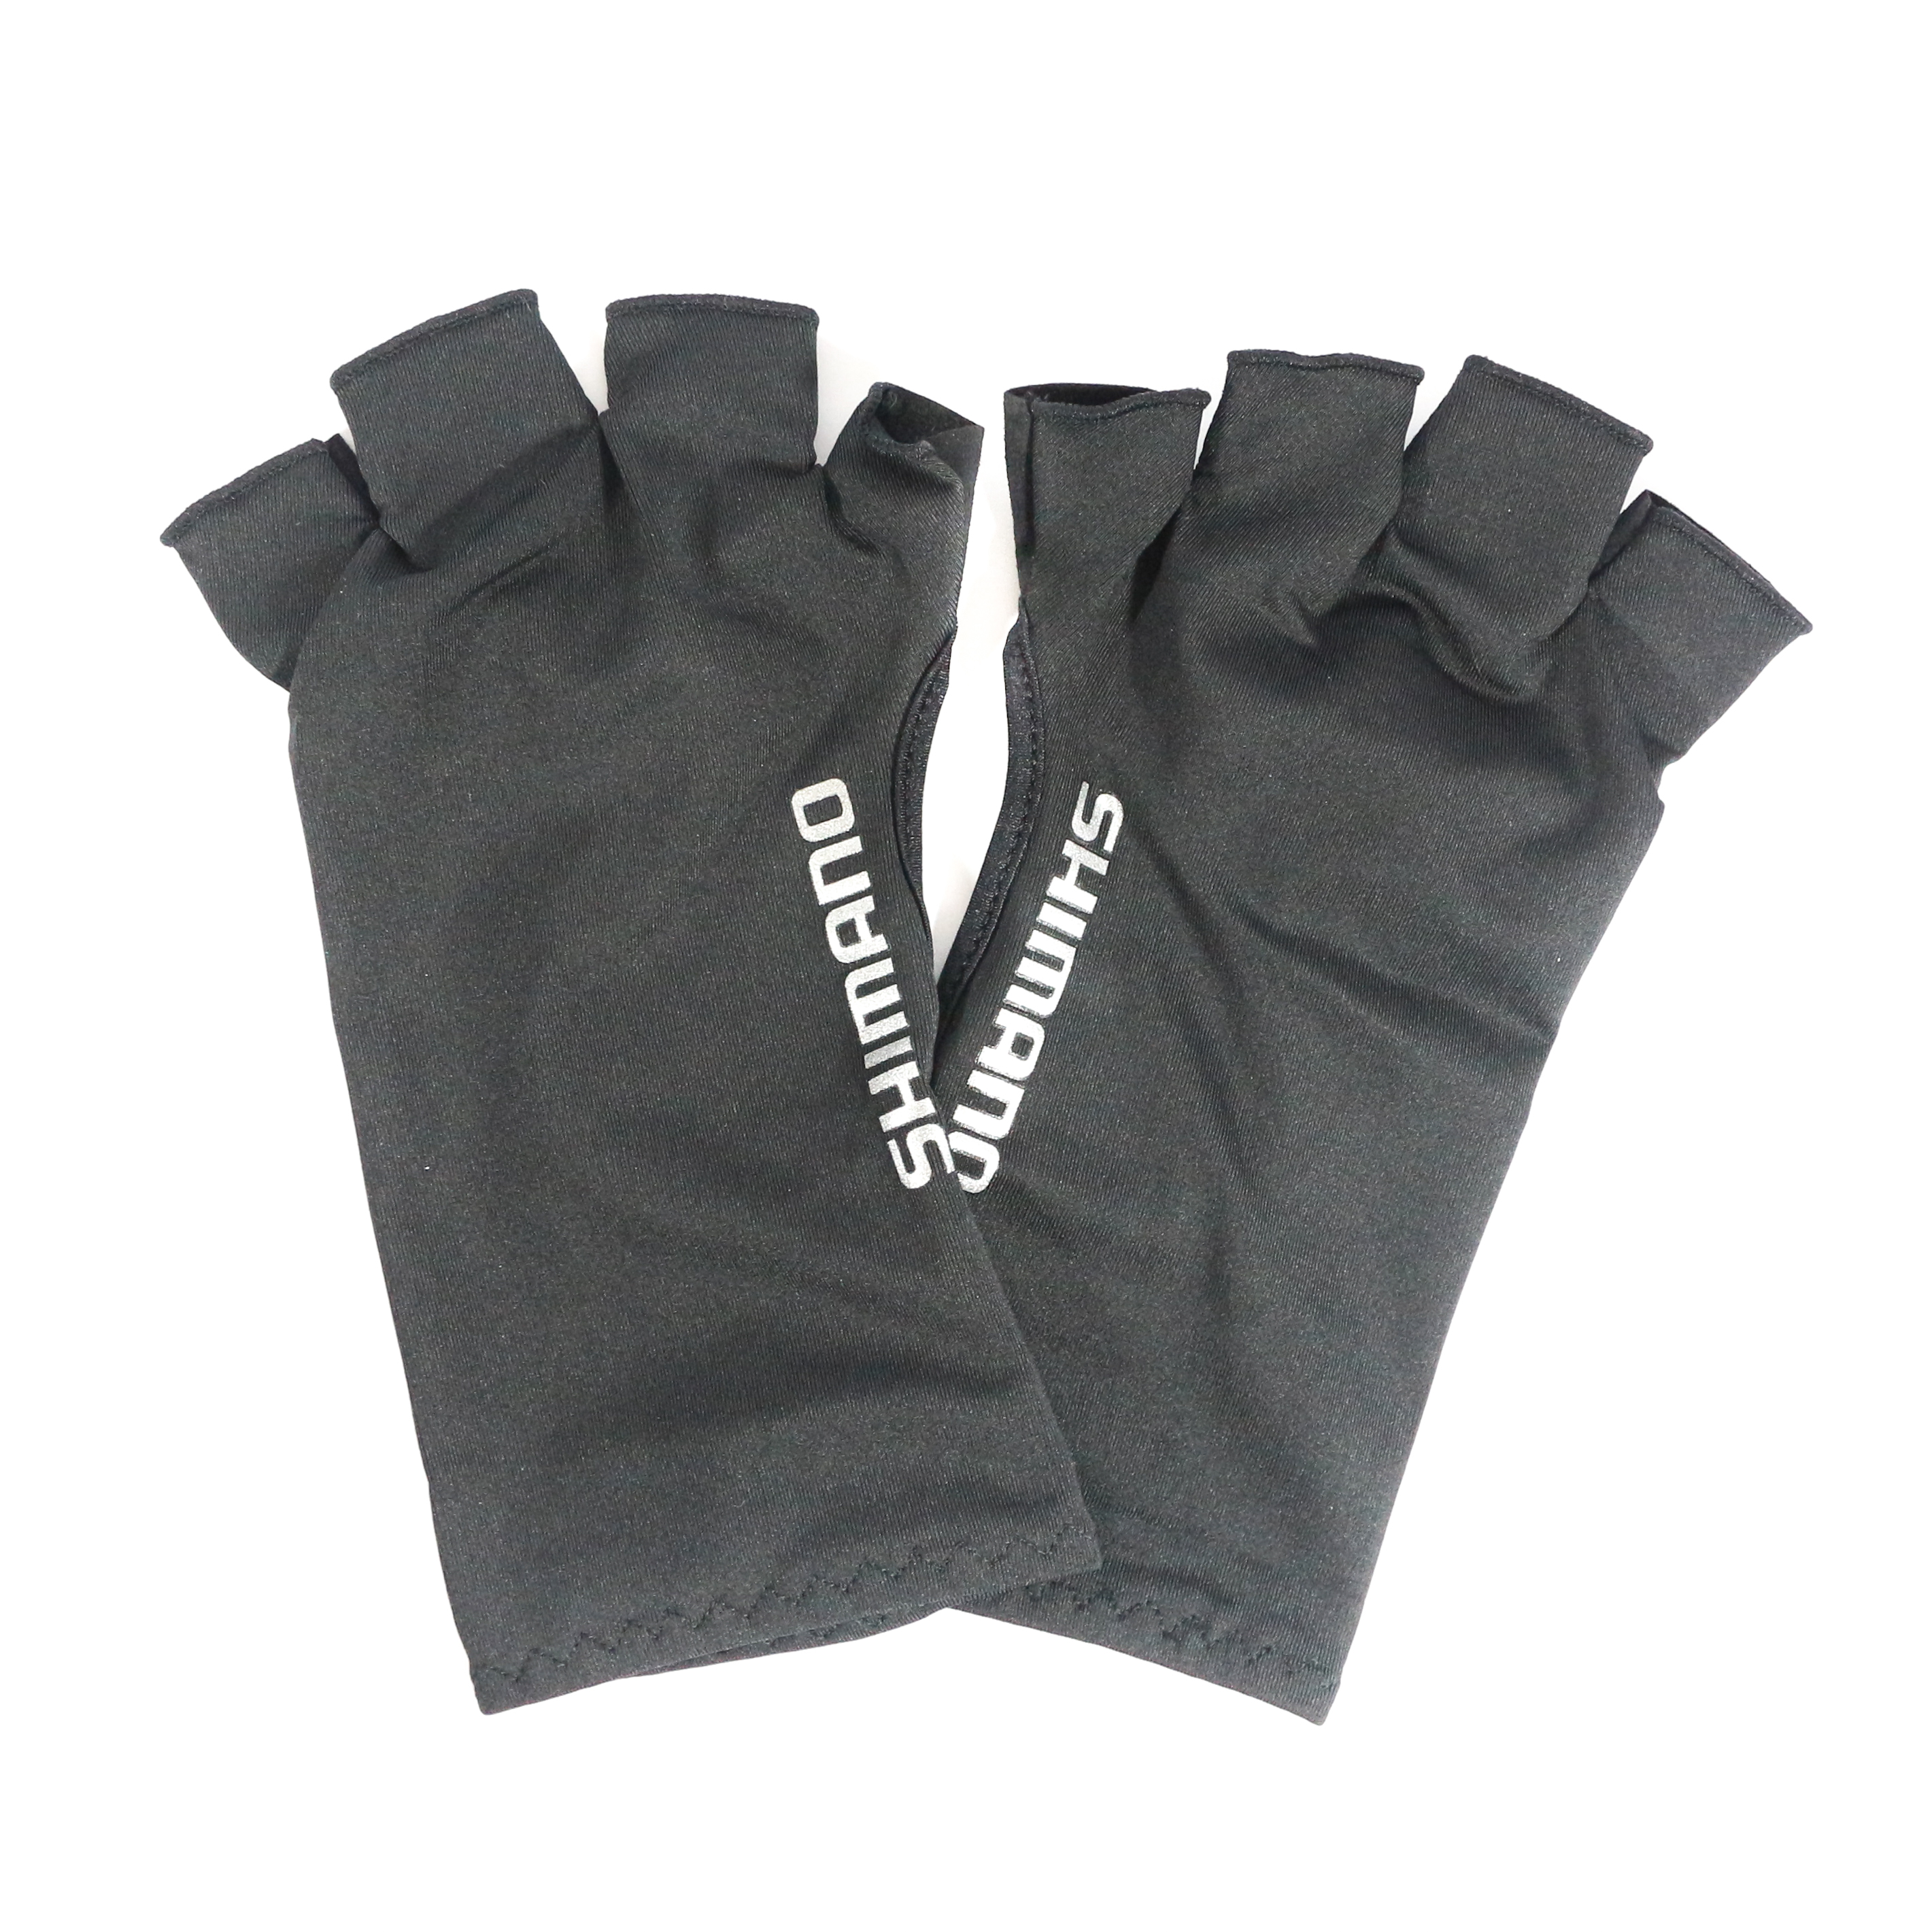 Shimano GL-048Q Gloves UPF 50 Sun Protection 5 Fingerless Bk Size L 483294